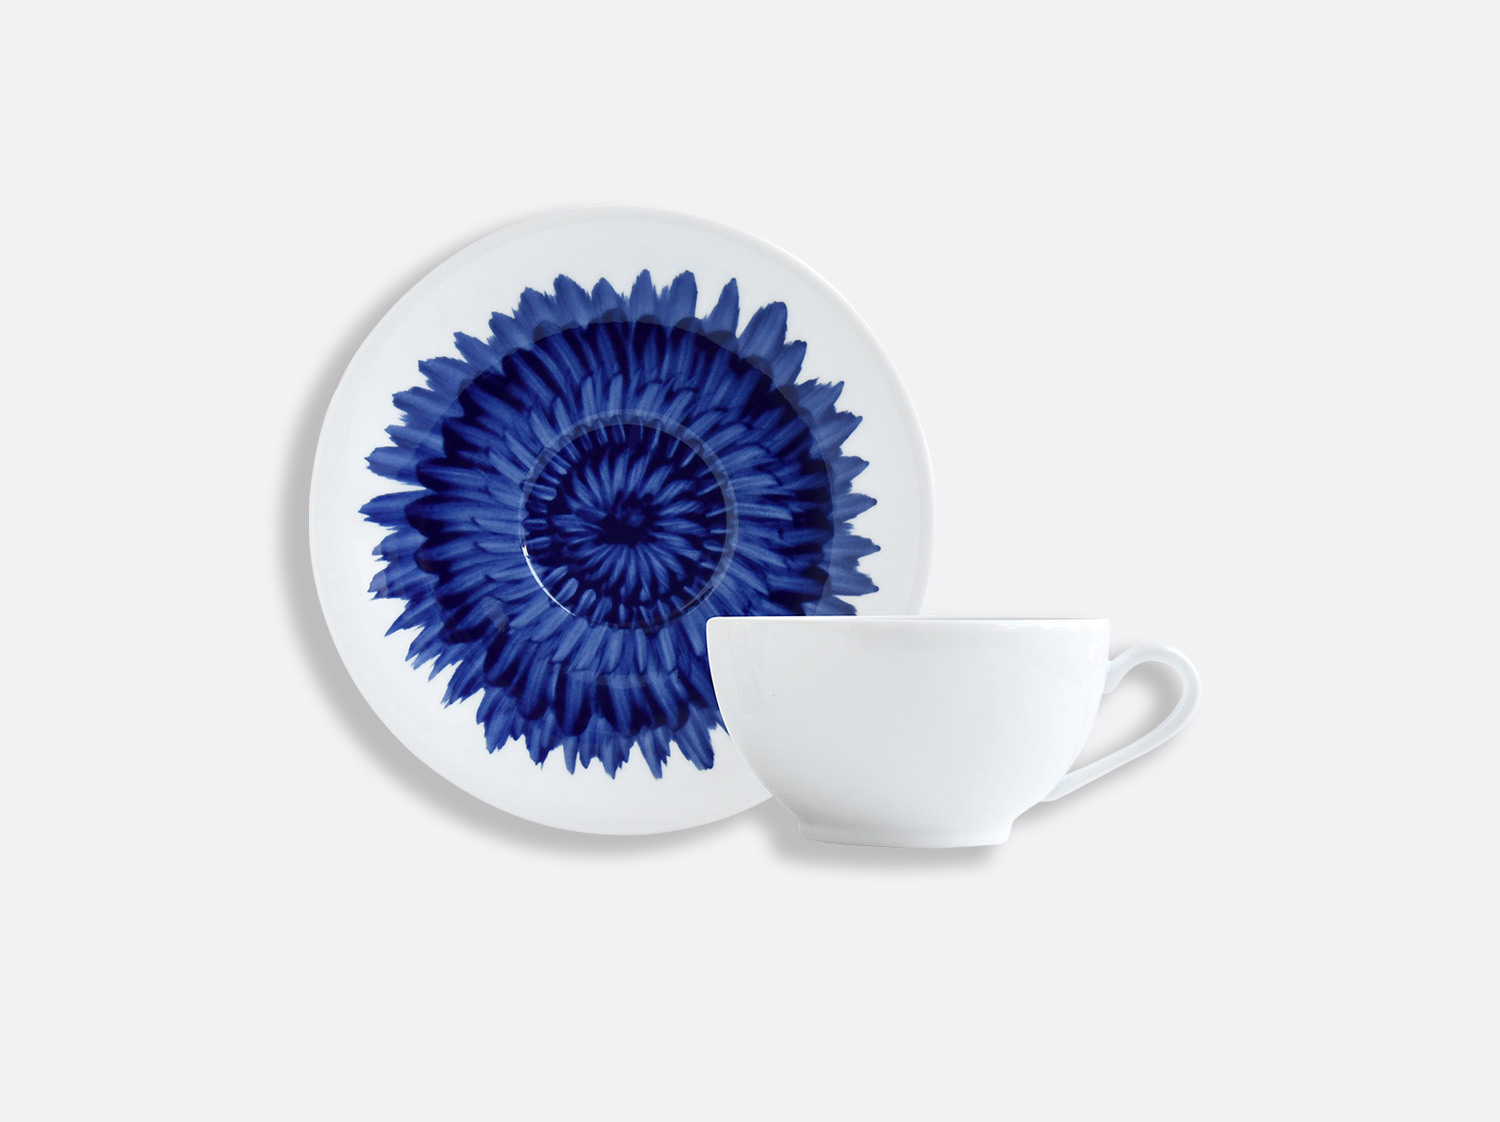 Tasse et soucoupe déjeuner 30 cl en porcelaine de la collection IN BLOOM - Zemer Peled Bernardaud